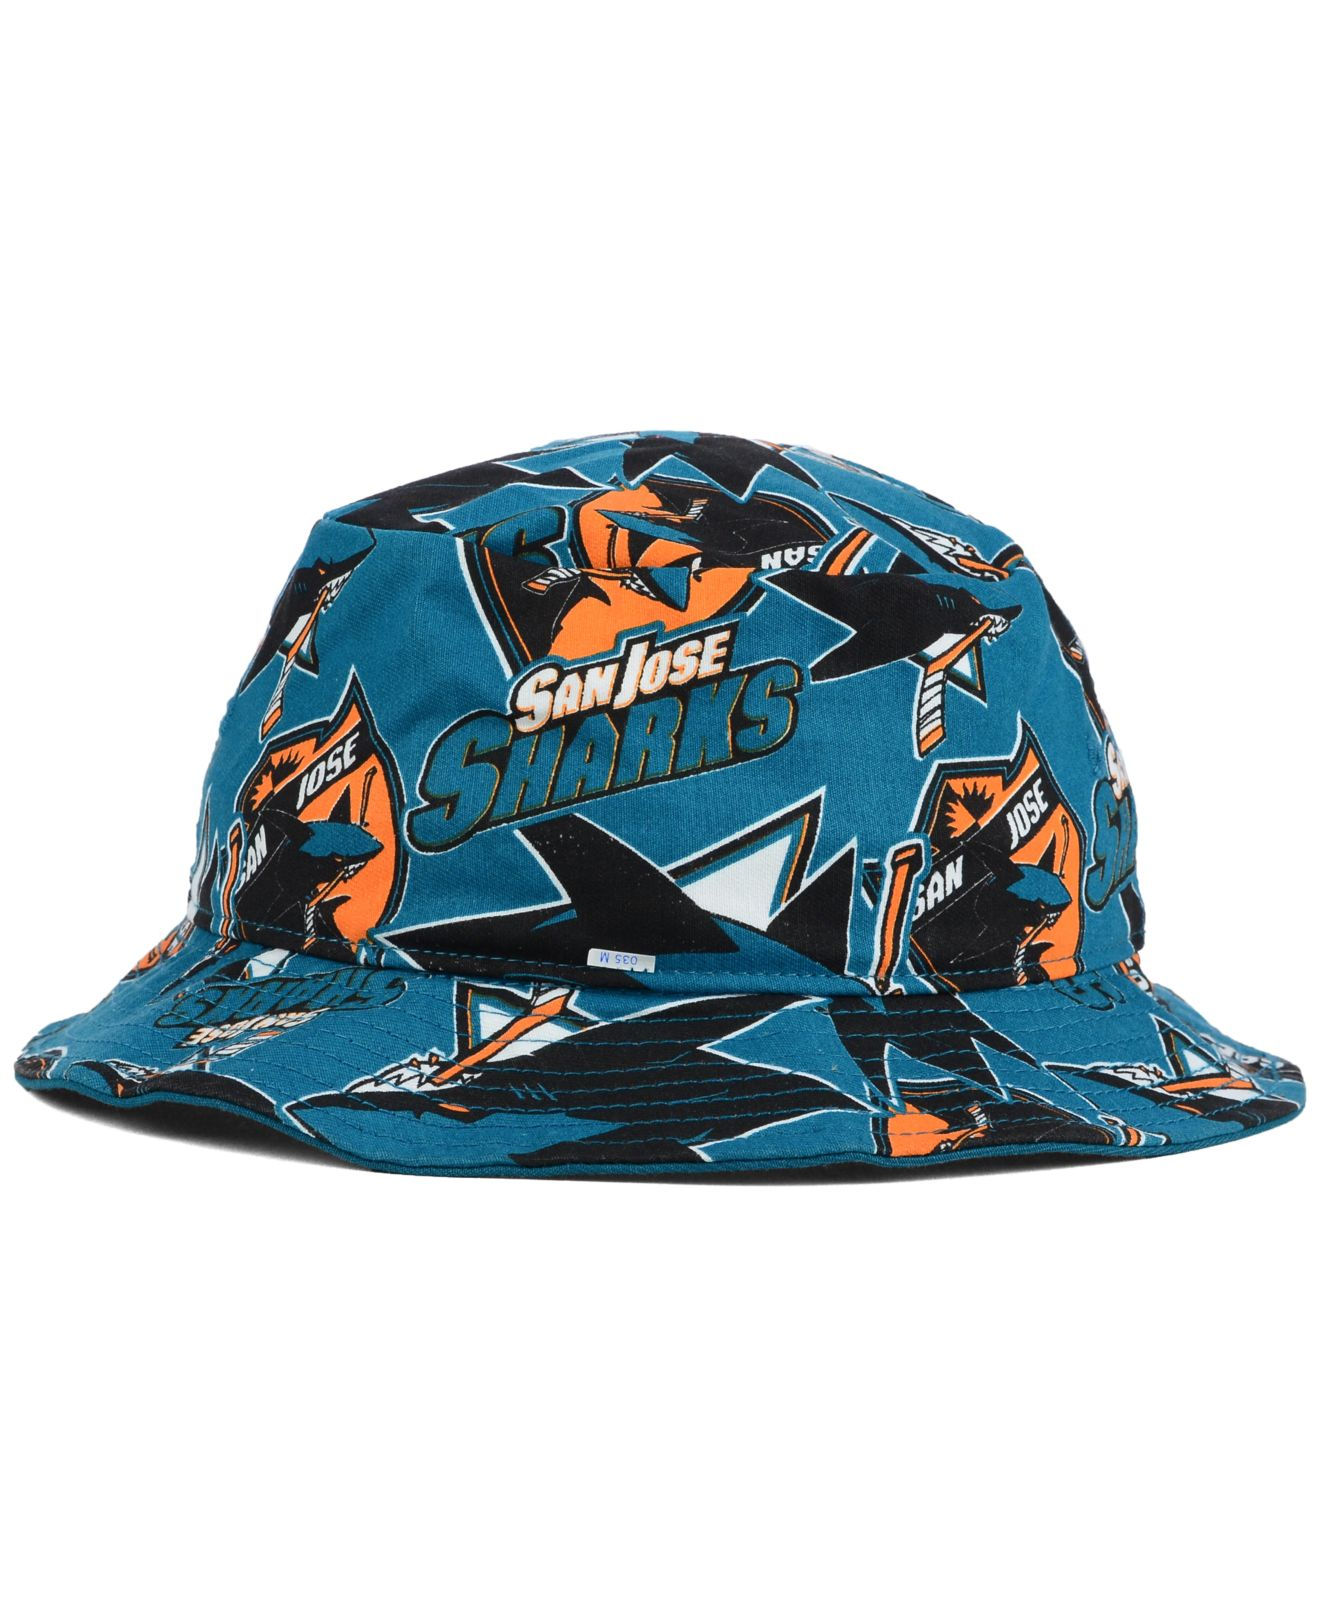 fb8ad73e882 Lyst - 47 Brand San Jose Sharks Bucket Hat in Blue